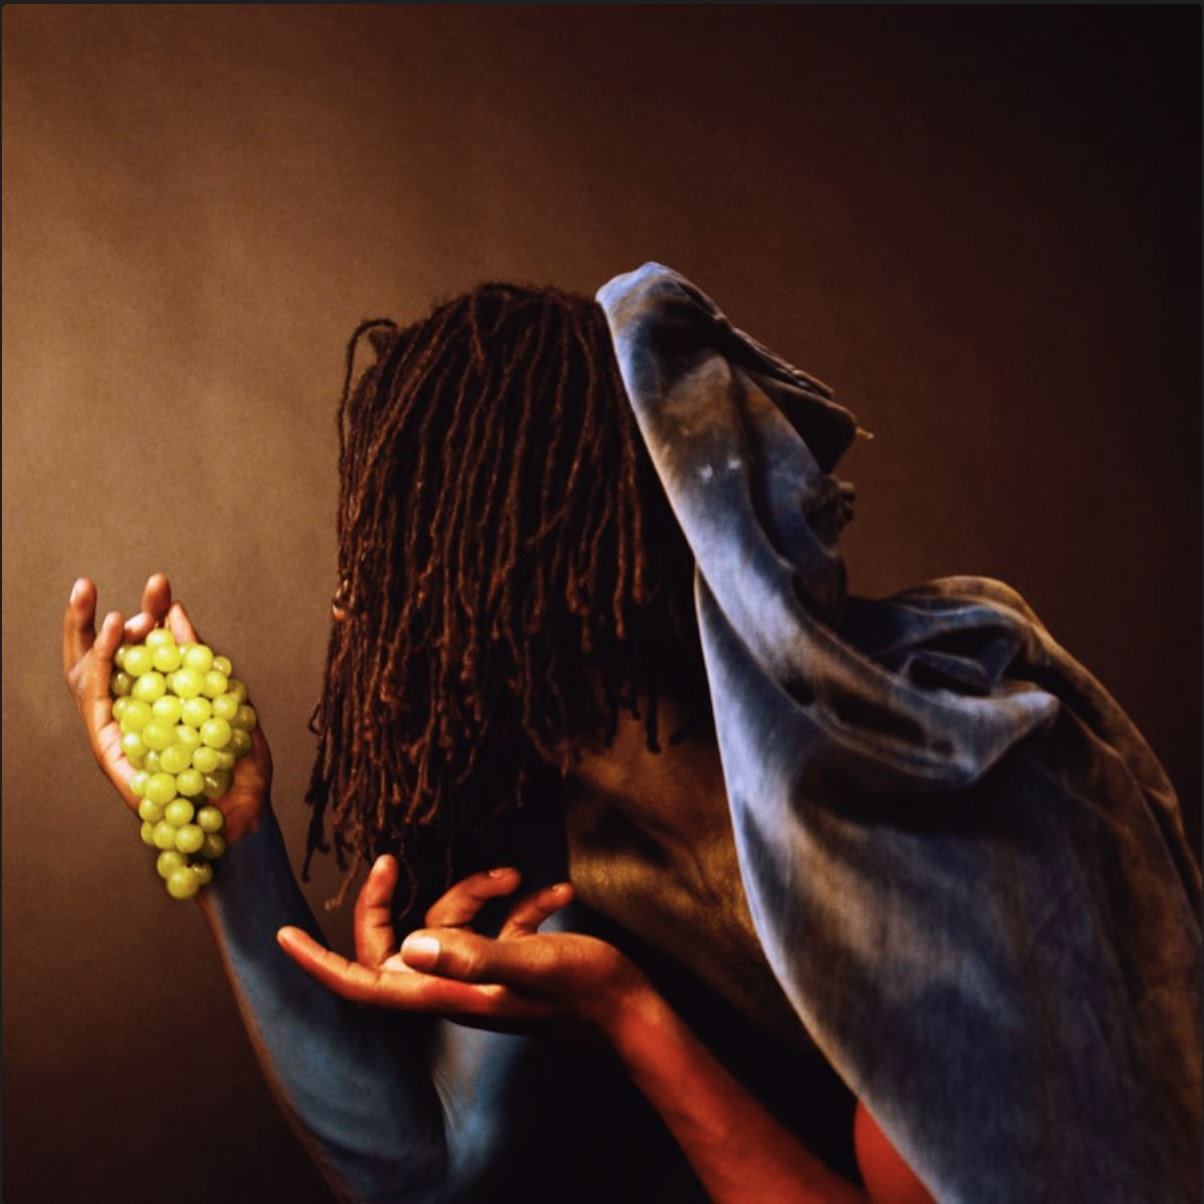 Grapes, 1989 Archival chromogenic print 55.6 x 55.6 cm 21 7/8 x 21 7/8 in